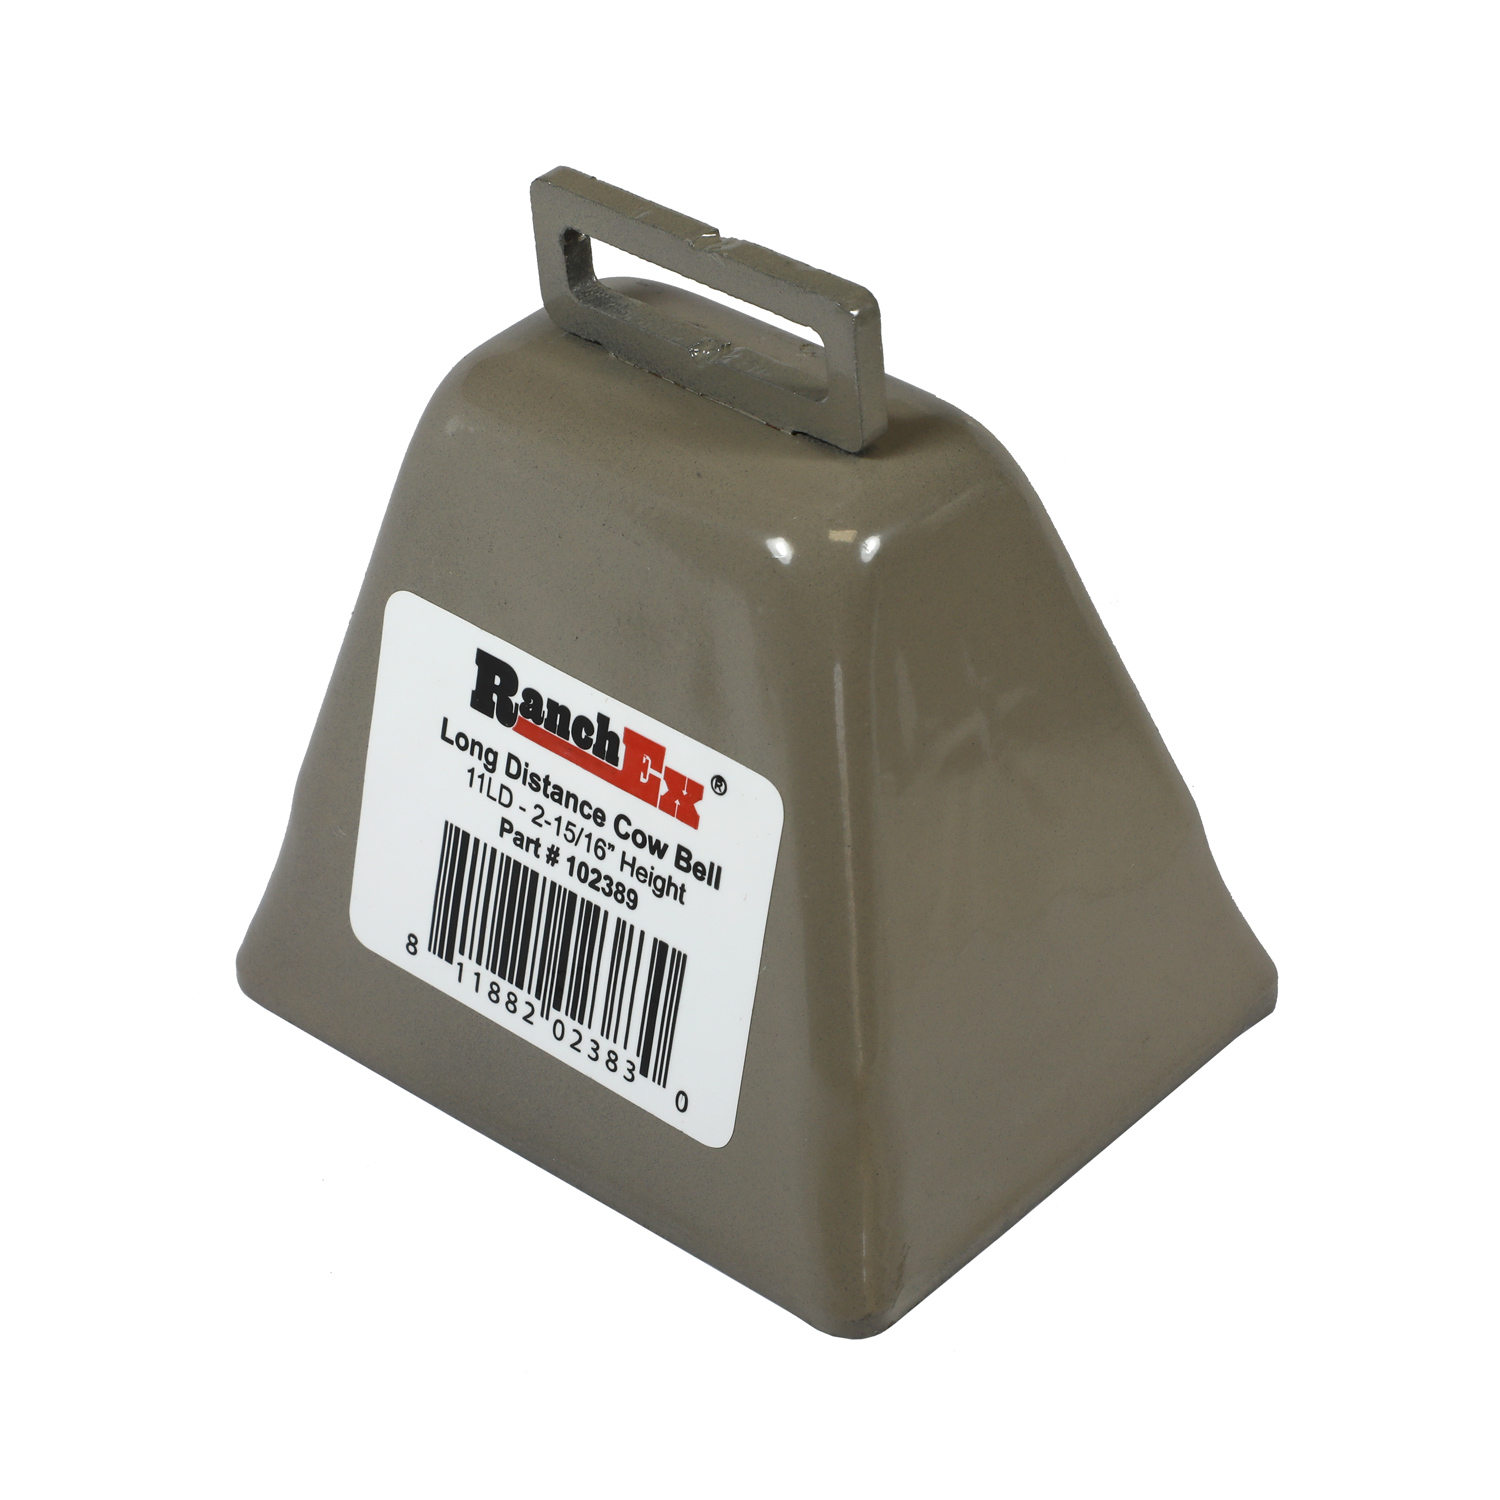 RanchEx Long Distance Cow Bell-11LD